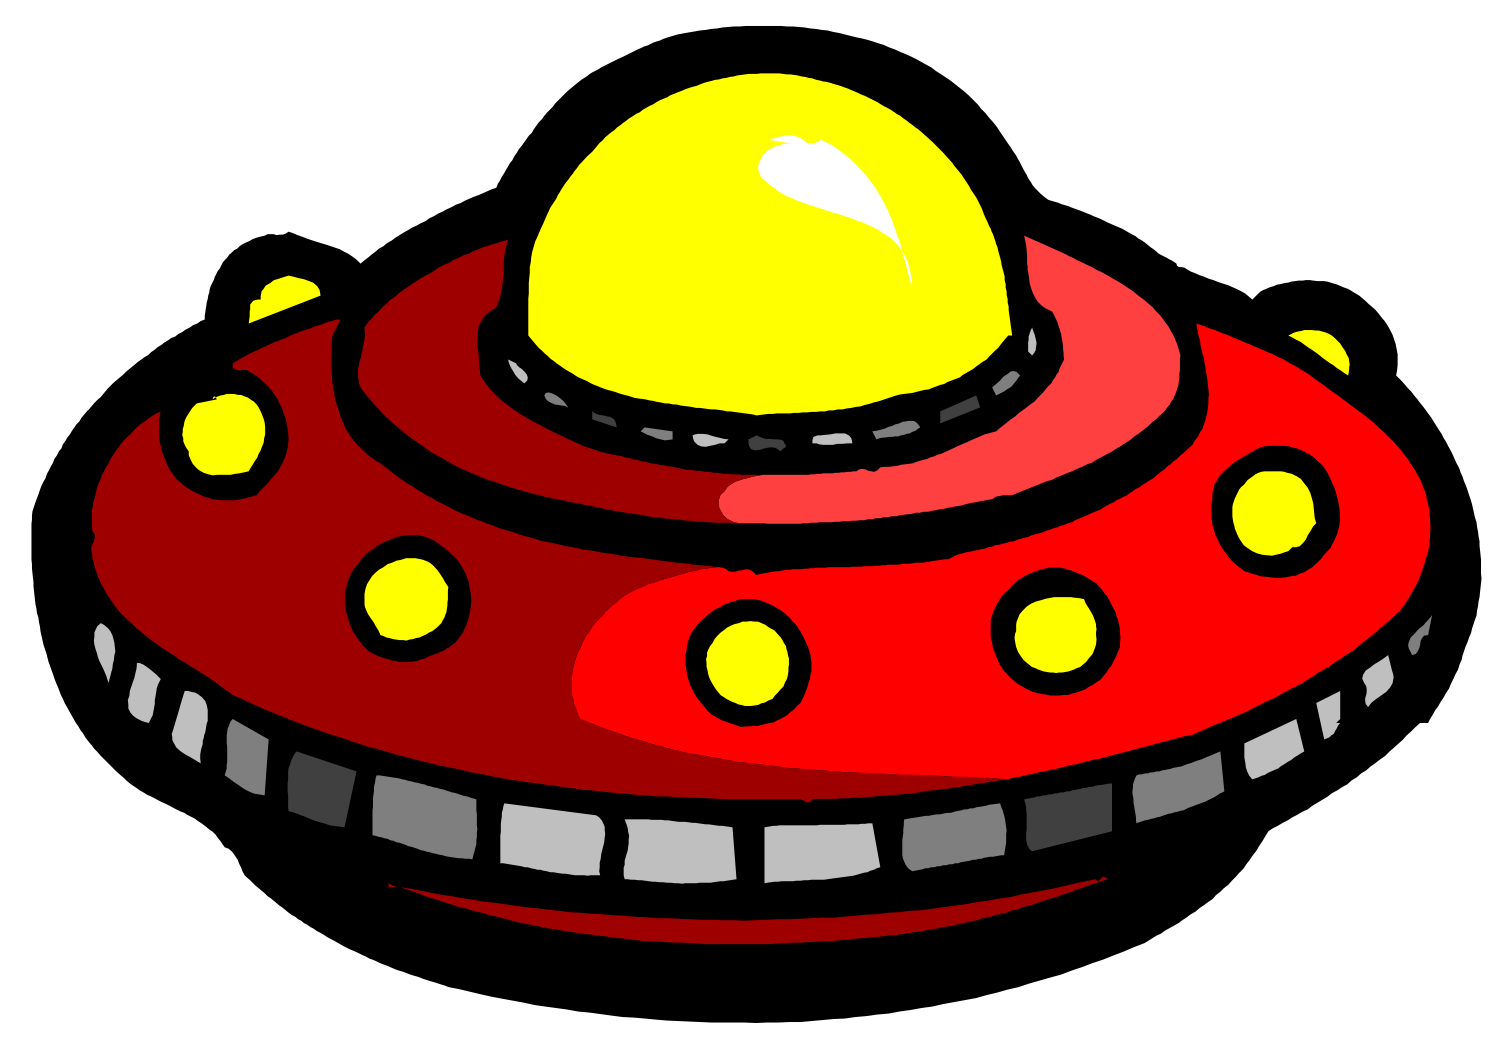 Spaceship clipart toon. Free cartoon pictures download